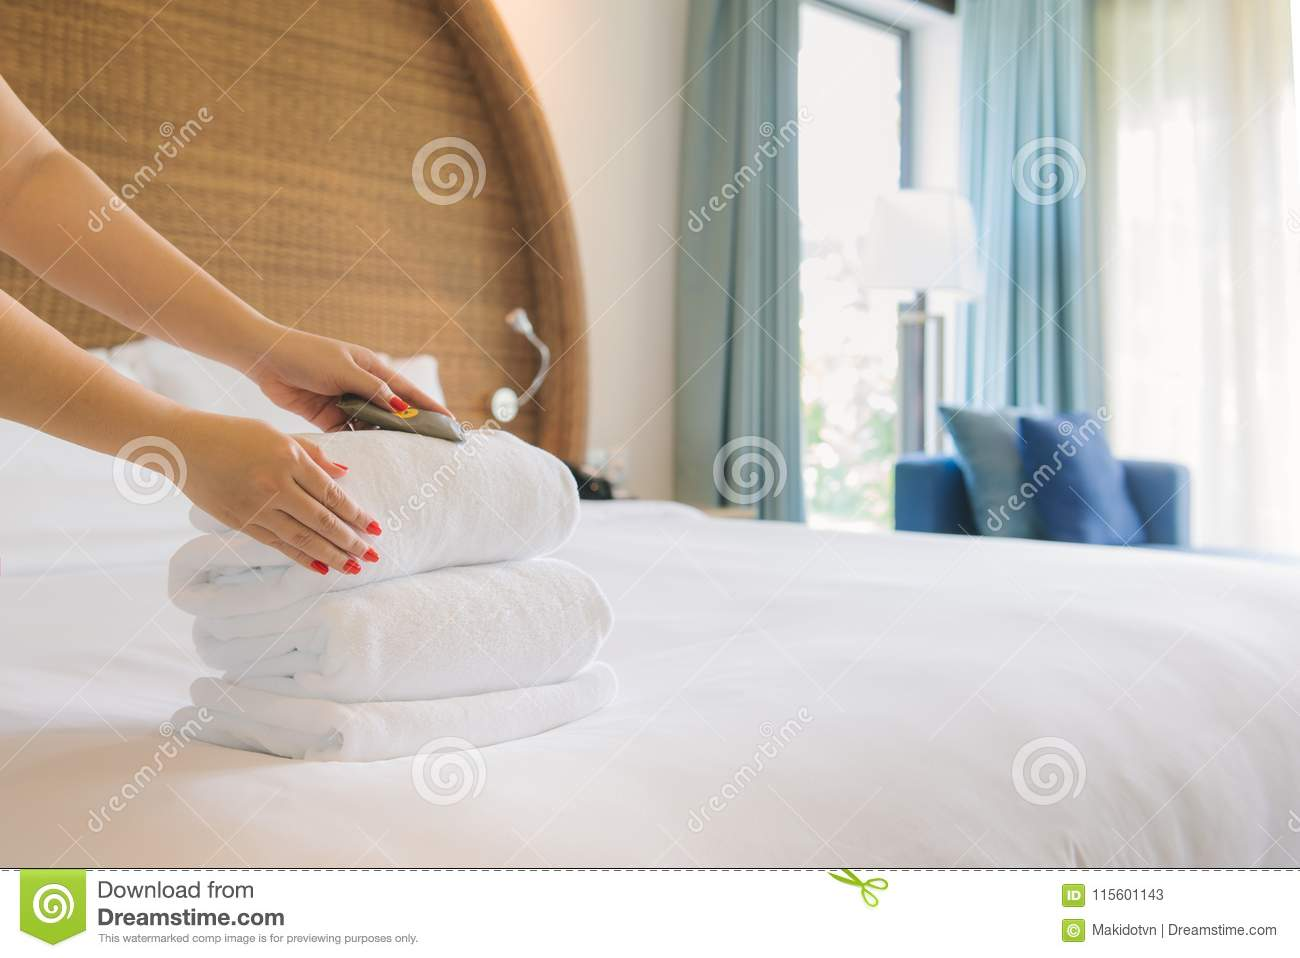 Hands of hotel maid bringing fresh towels to the room